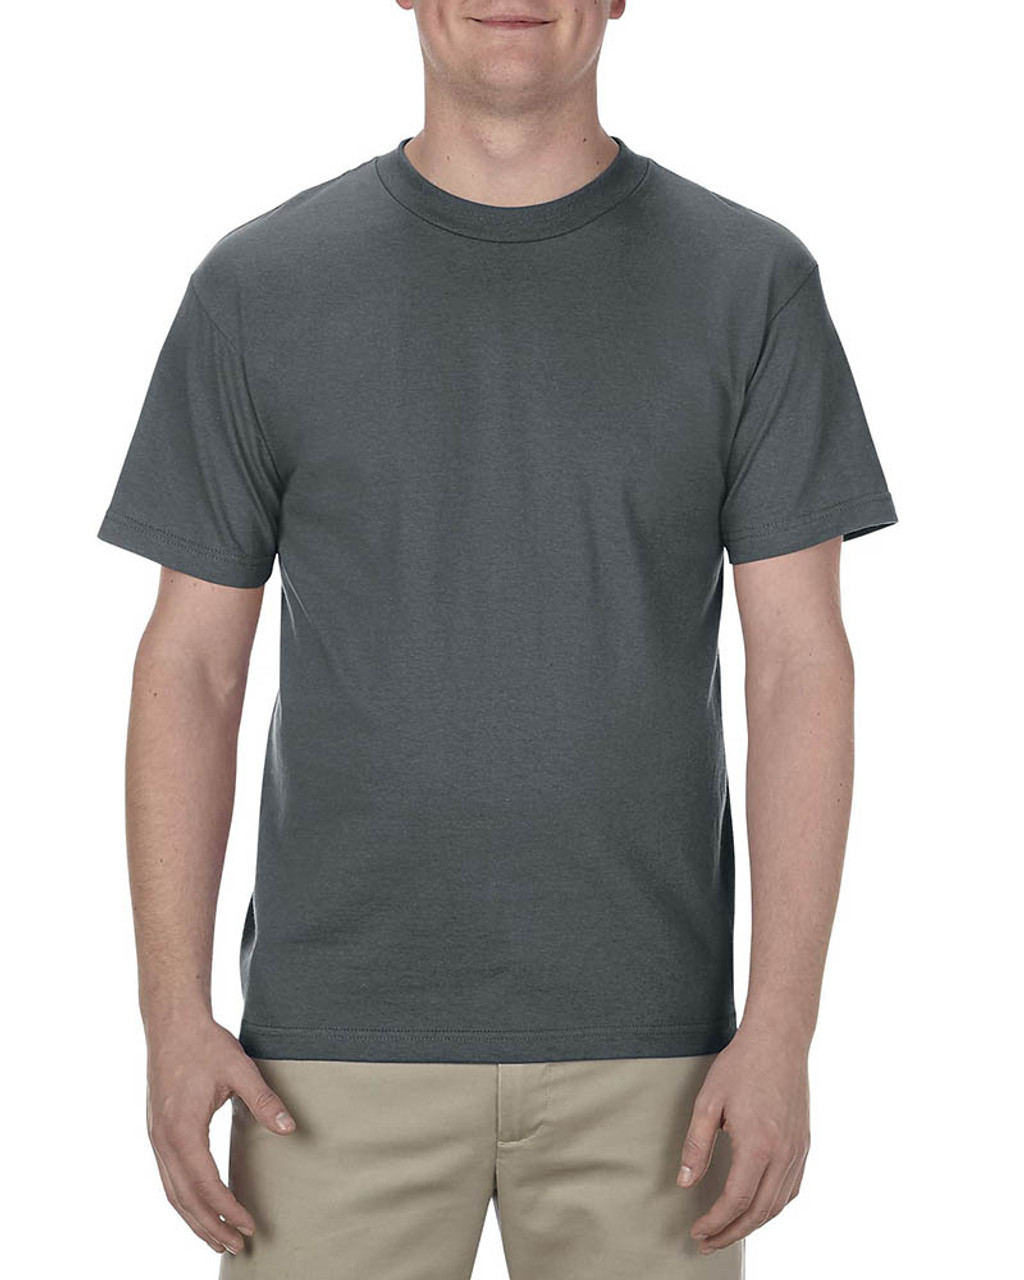 Charcoal - AL1301 Alstyle Adult 6.0 oz., 100% Cotton T-Shirt   BlankClothing.ca